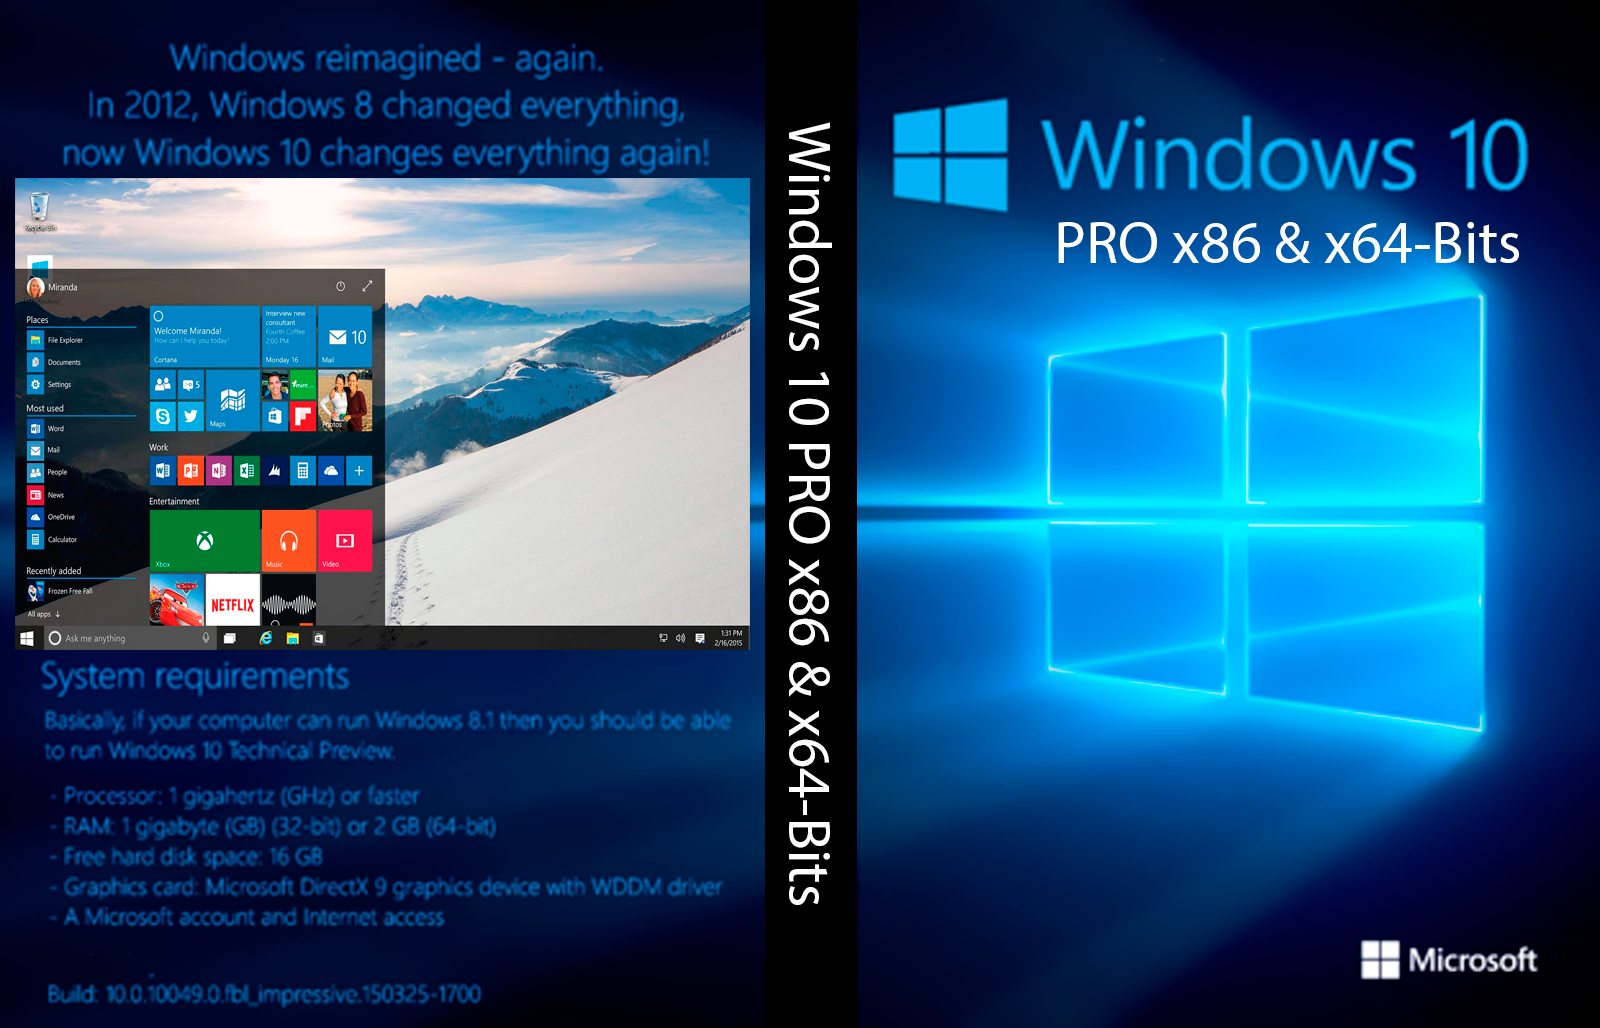 Windows 10 pro x86 x64 bits capa gigain games for Window 10 pro